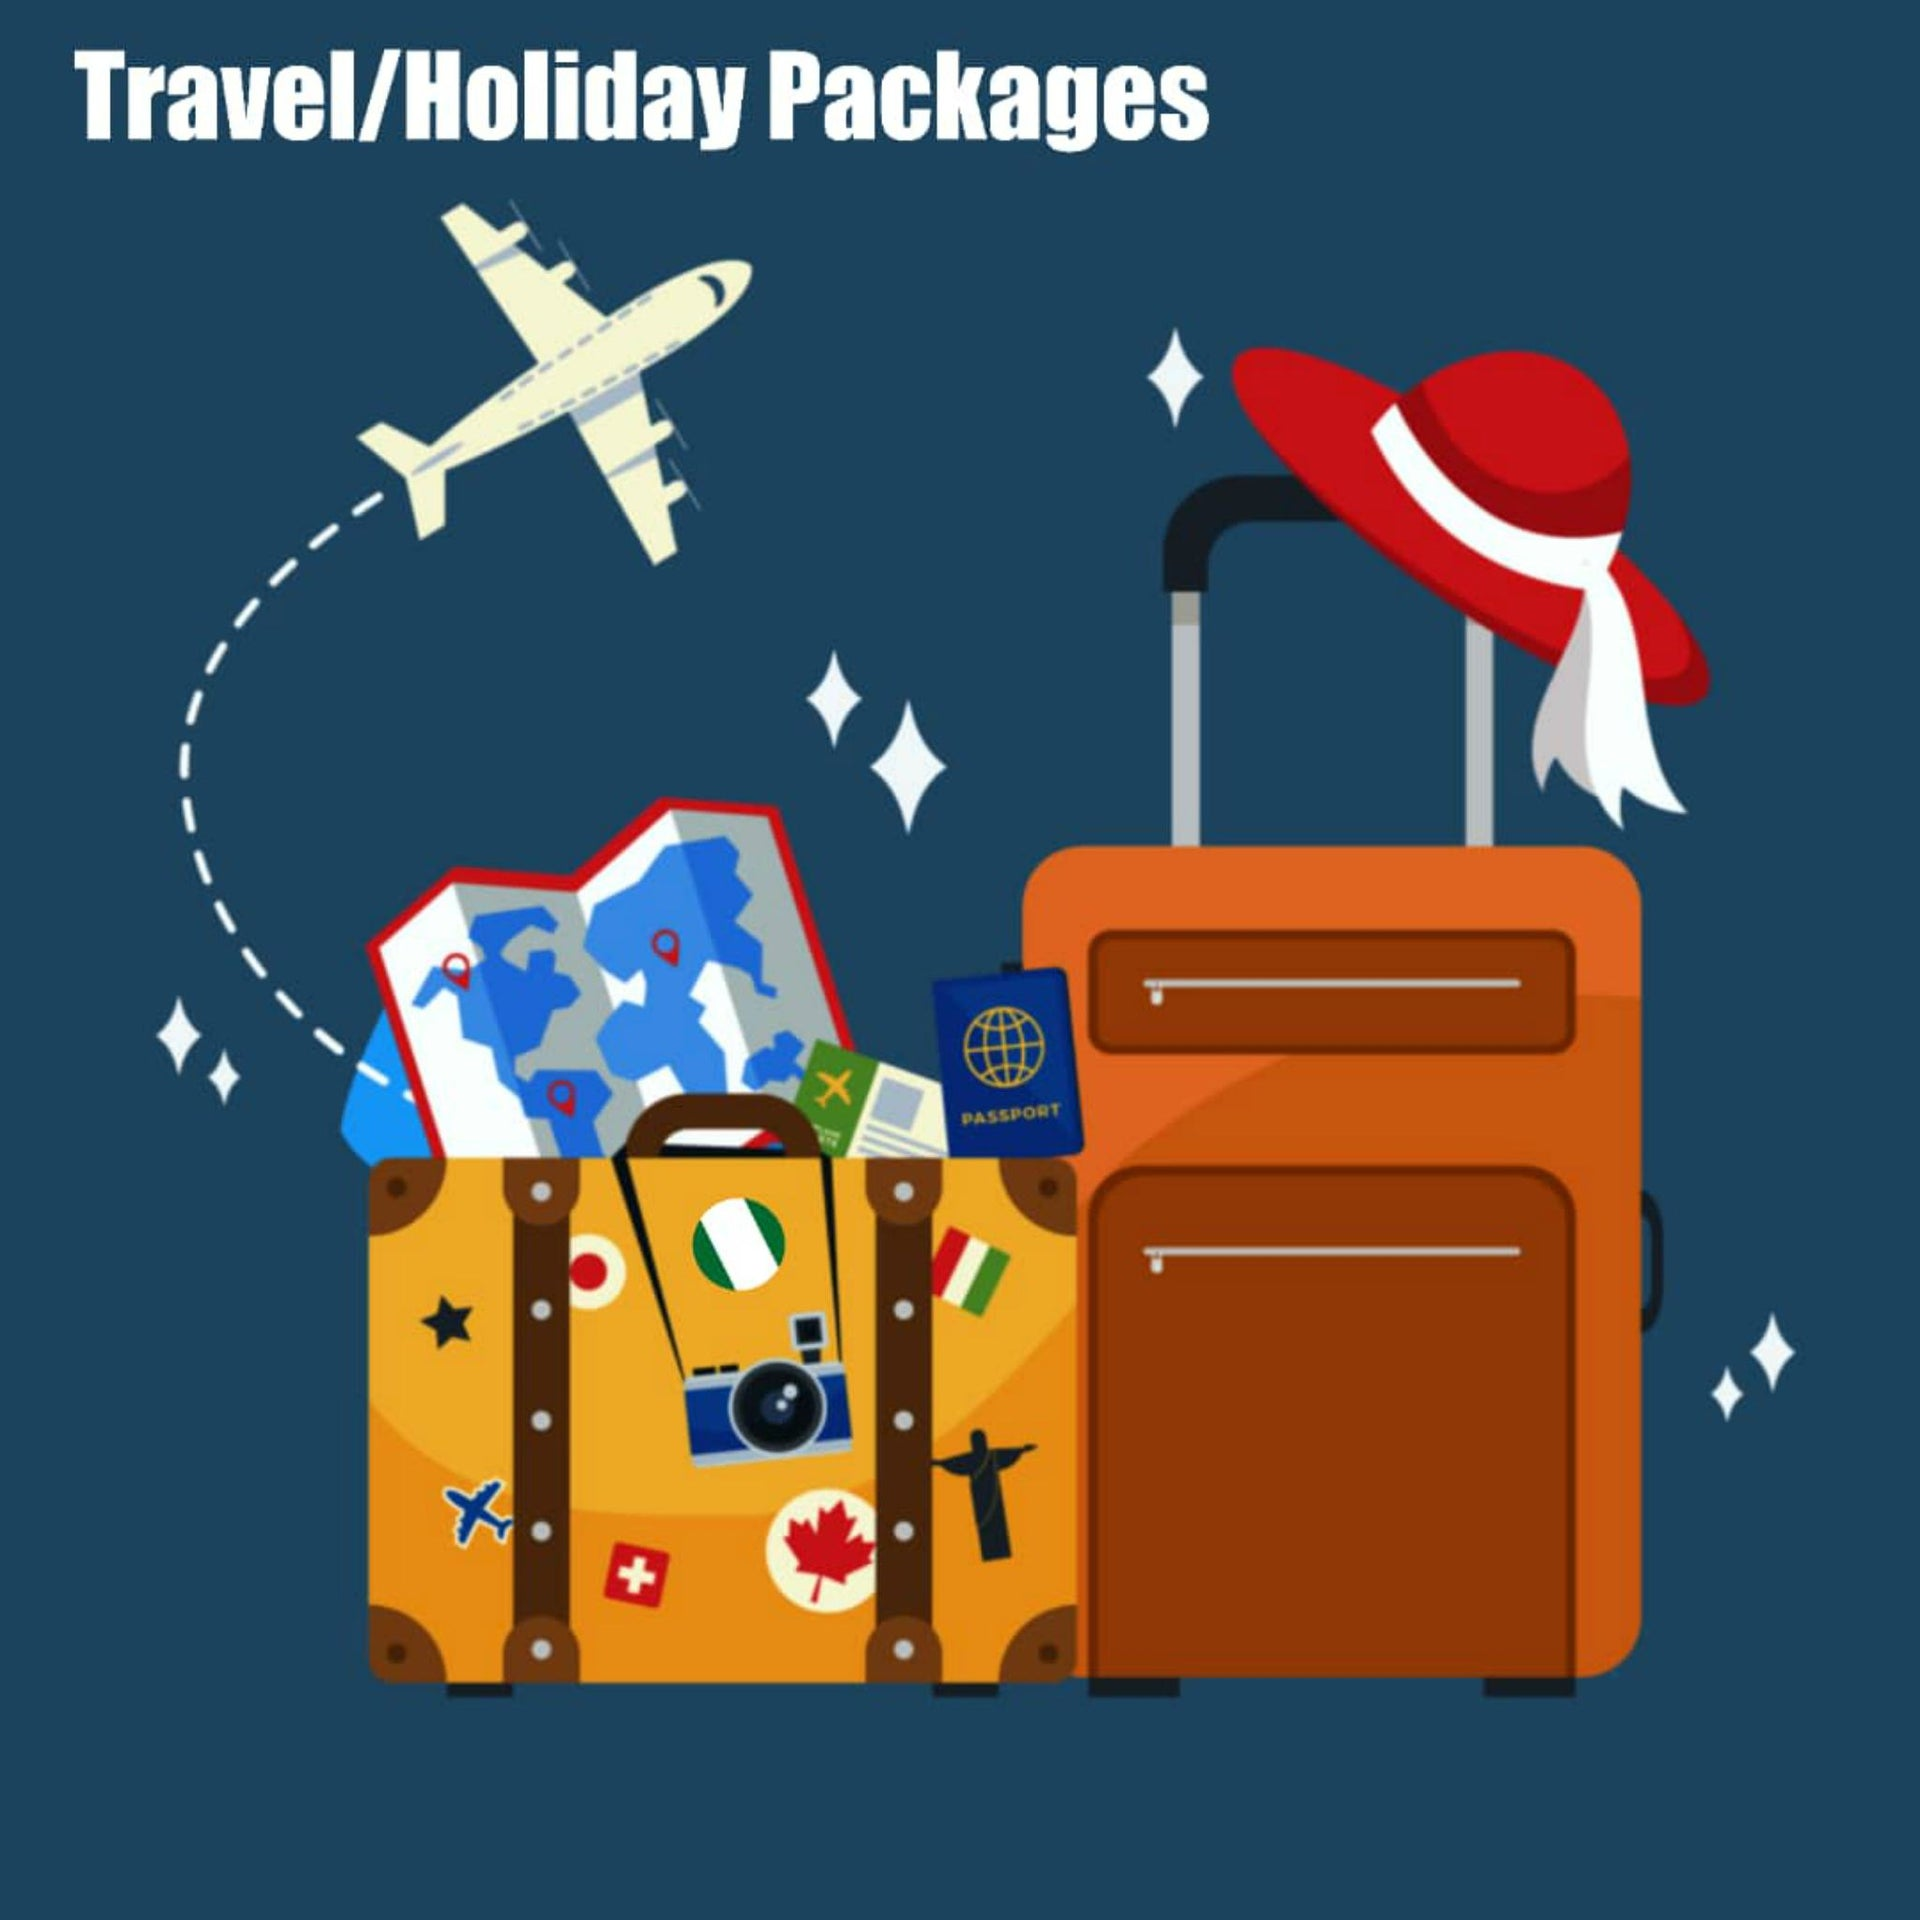 Travel/Holiday Packages